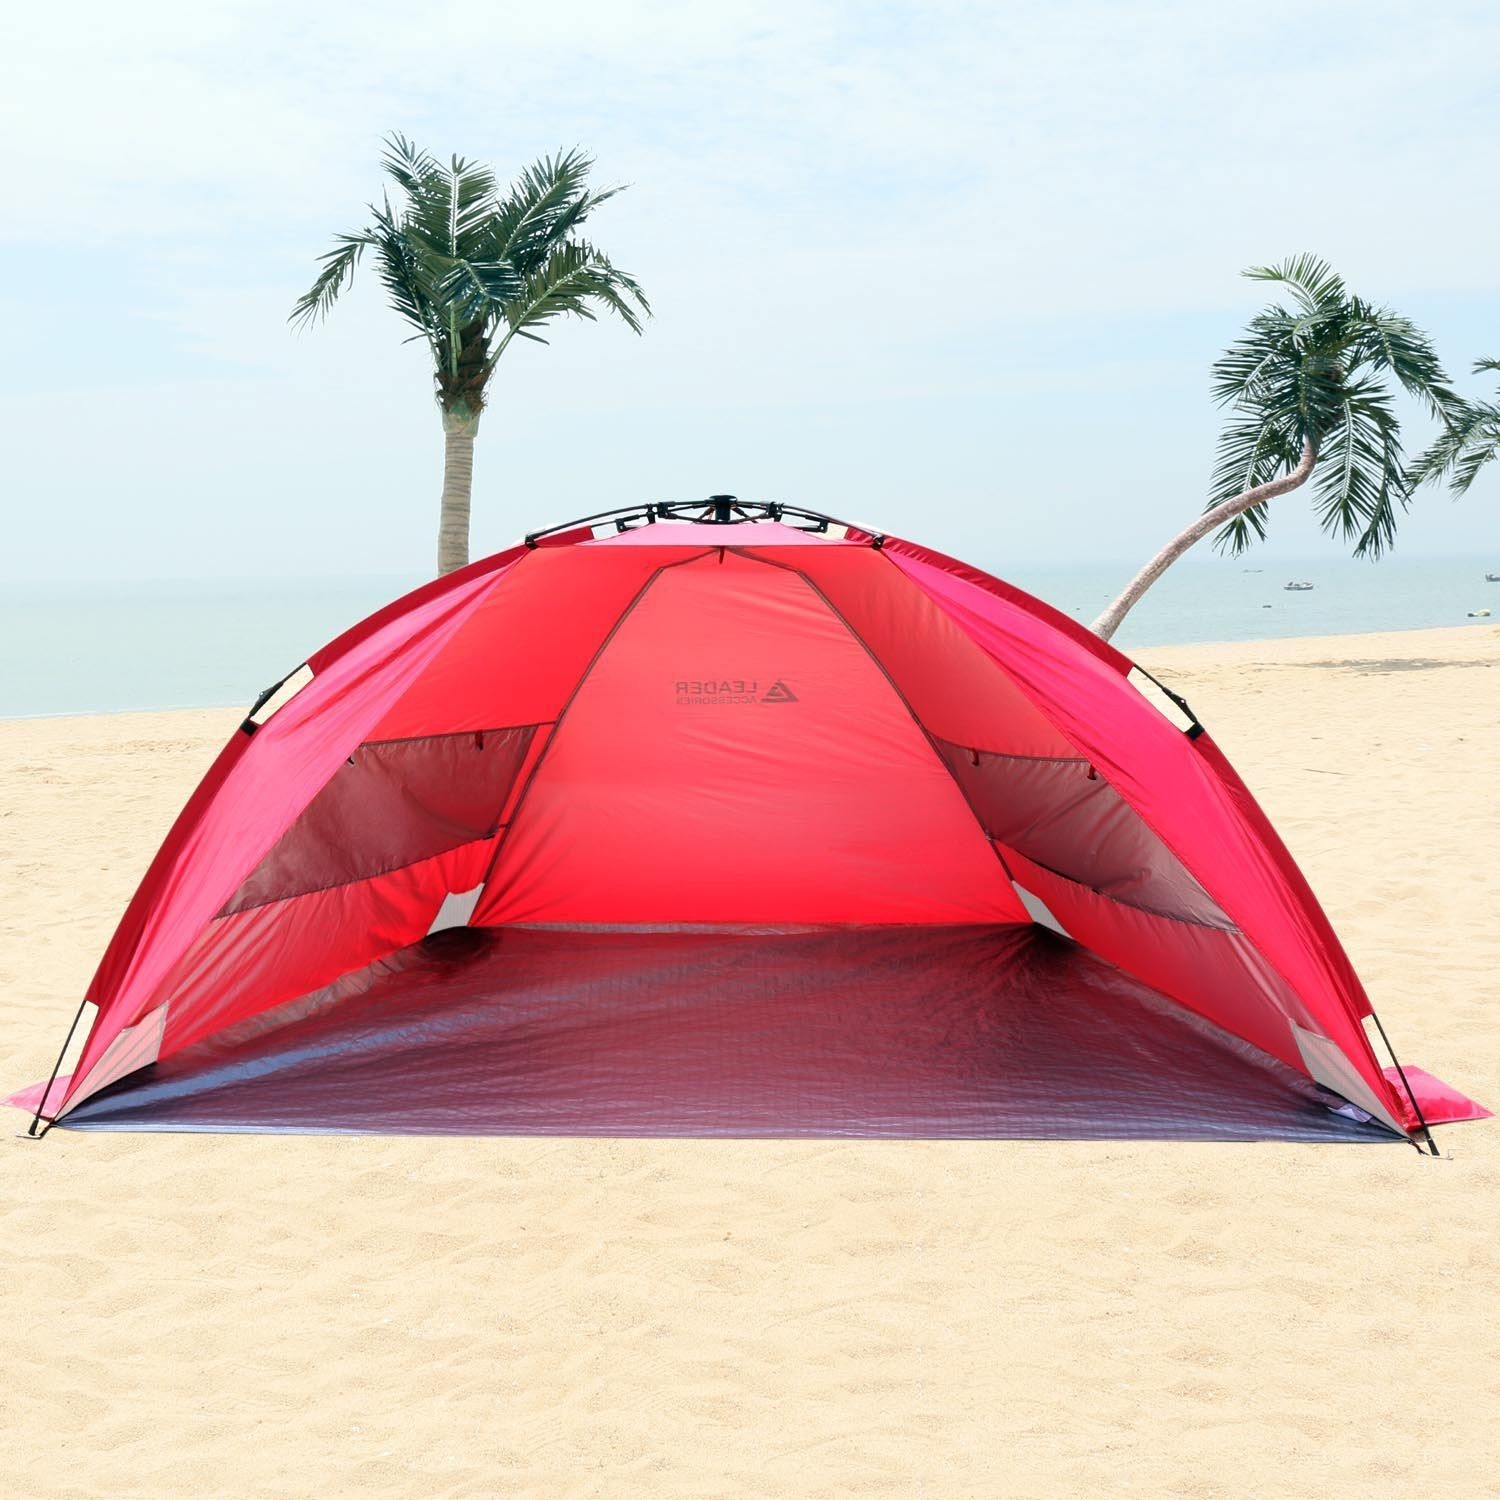 EasyUp Beach Tent Quick Cabana Sun Shelter Family Use,Sets up in Seconds 4